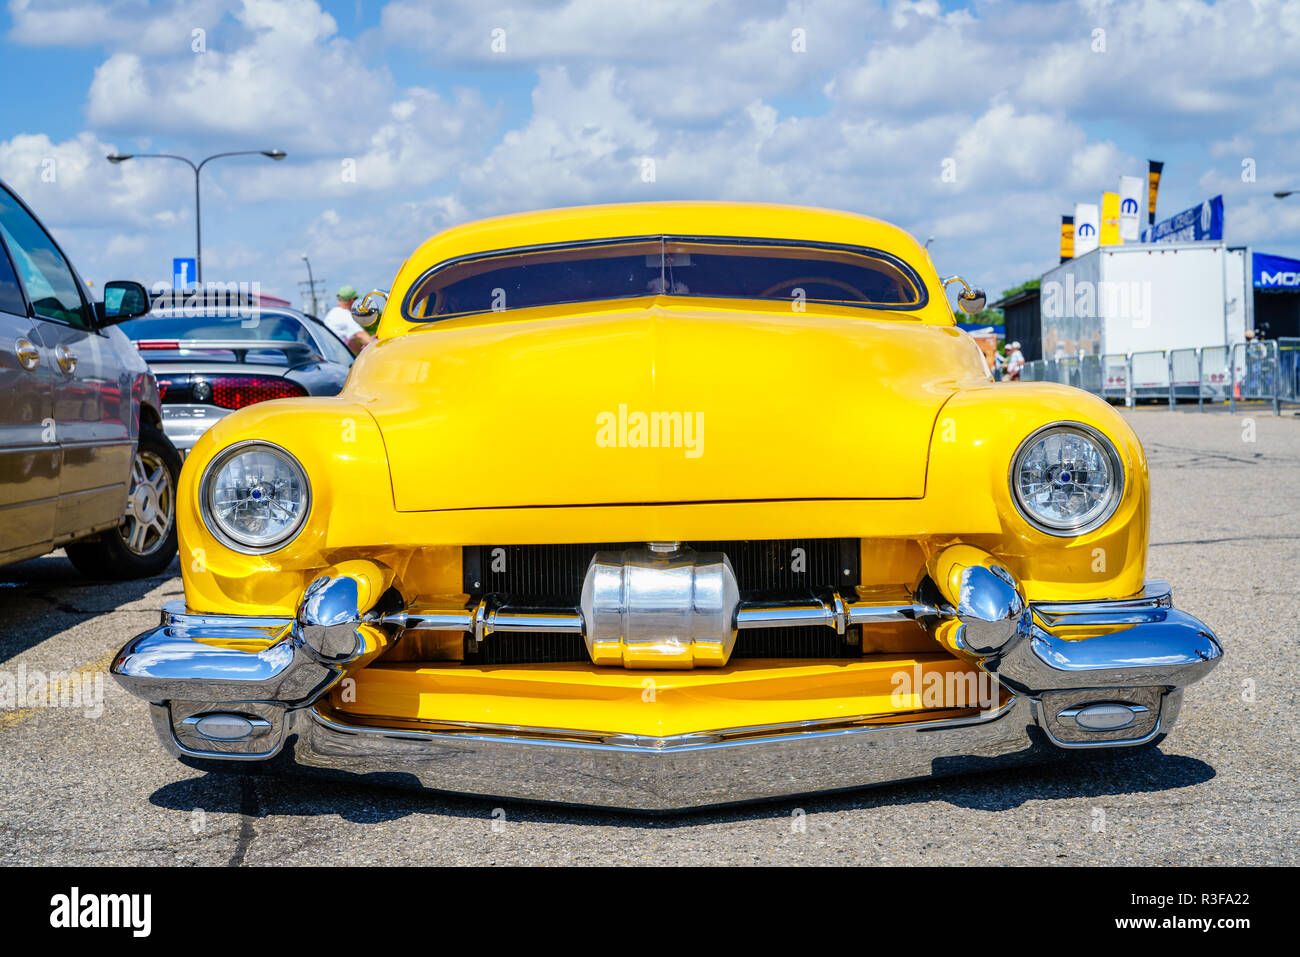 Detroit, Michigan, August 19, 2016: custom built car at Woodward Dream Cruise - largest one-day automotive event in USA - Stock Image